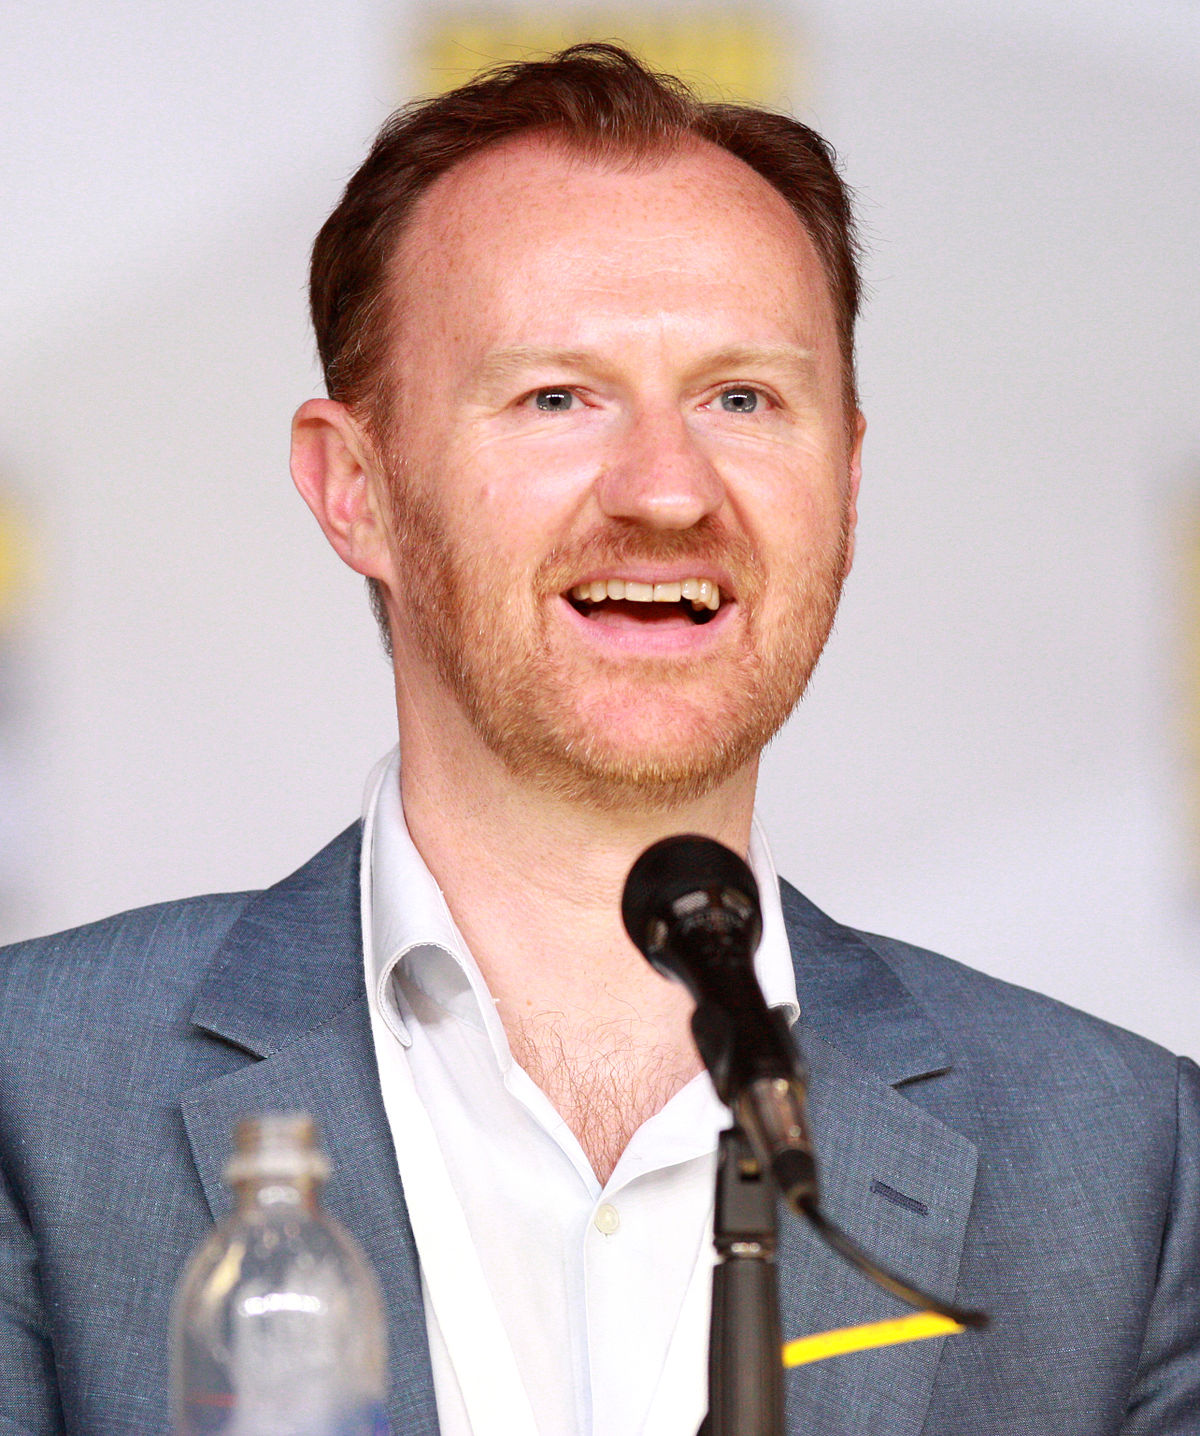 MARK GATISS (UK ACTOR/WRITER/DIRECTOR) on gay rights ...